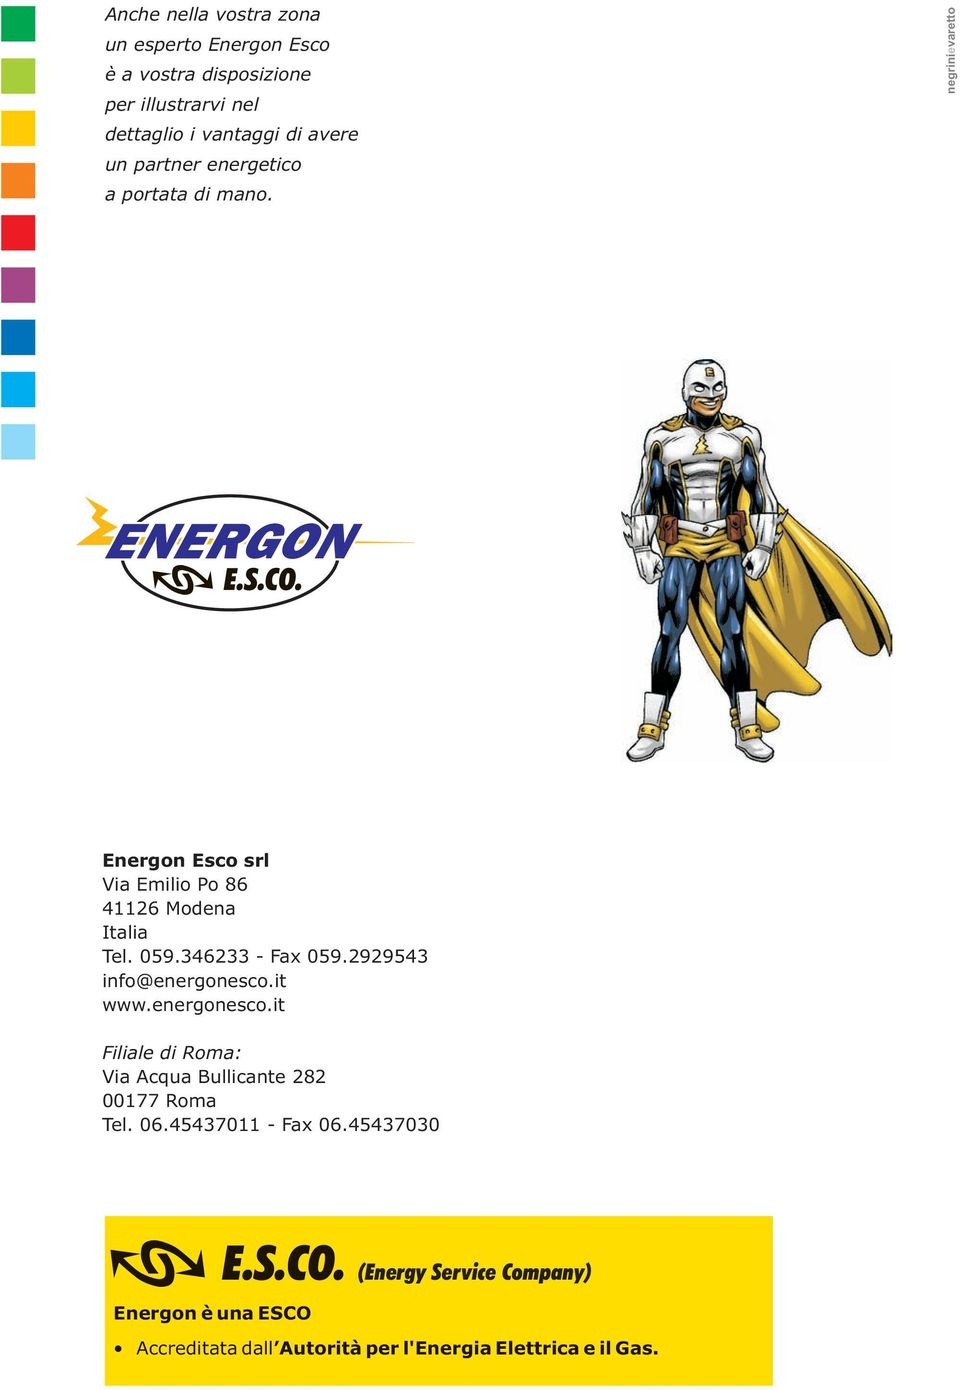 346233 - Fax 059.2929543 info@energonesco.it www.energonesco.it Filiale di Roma: Via Acqua Bullicante 282 00177 Roma Tel. 06.